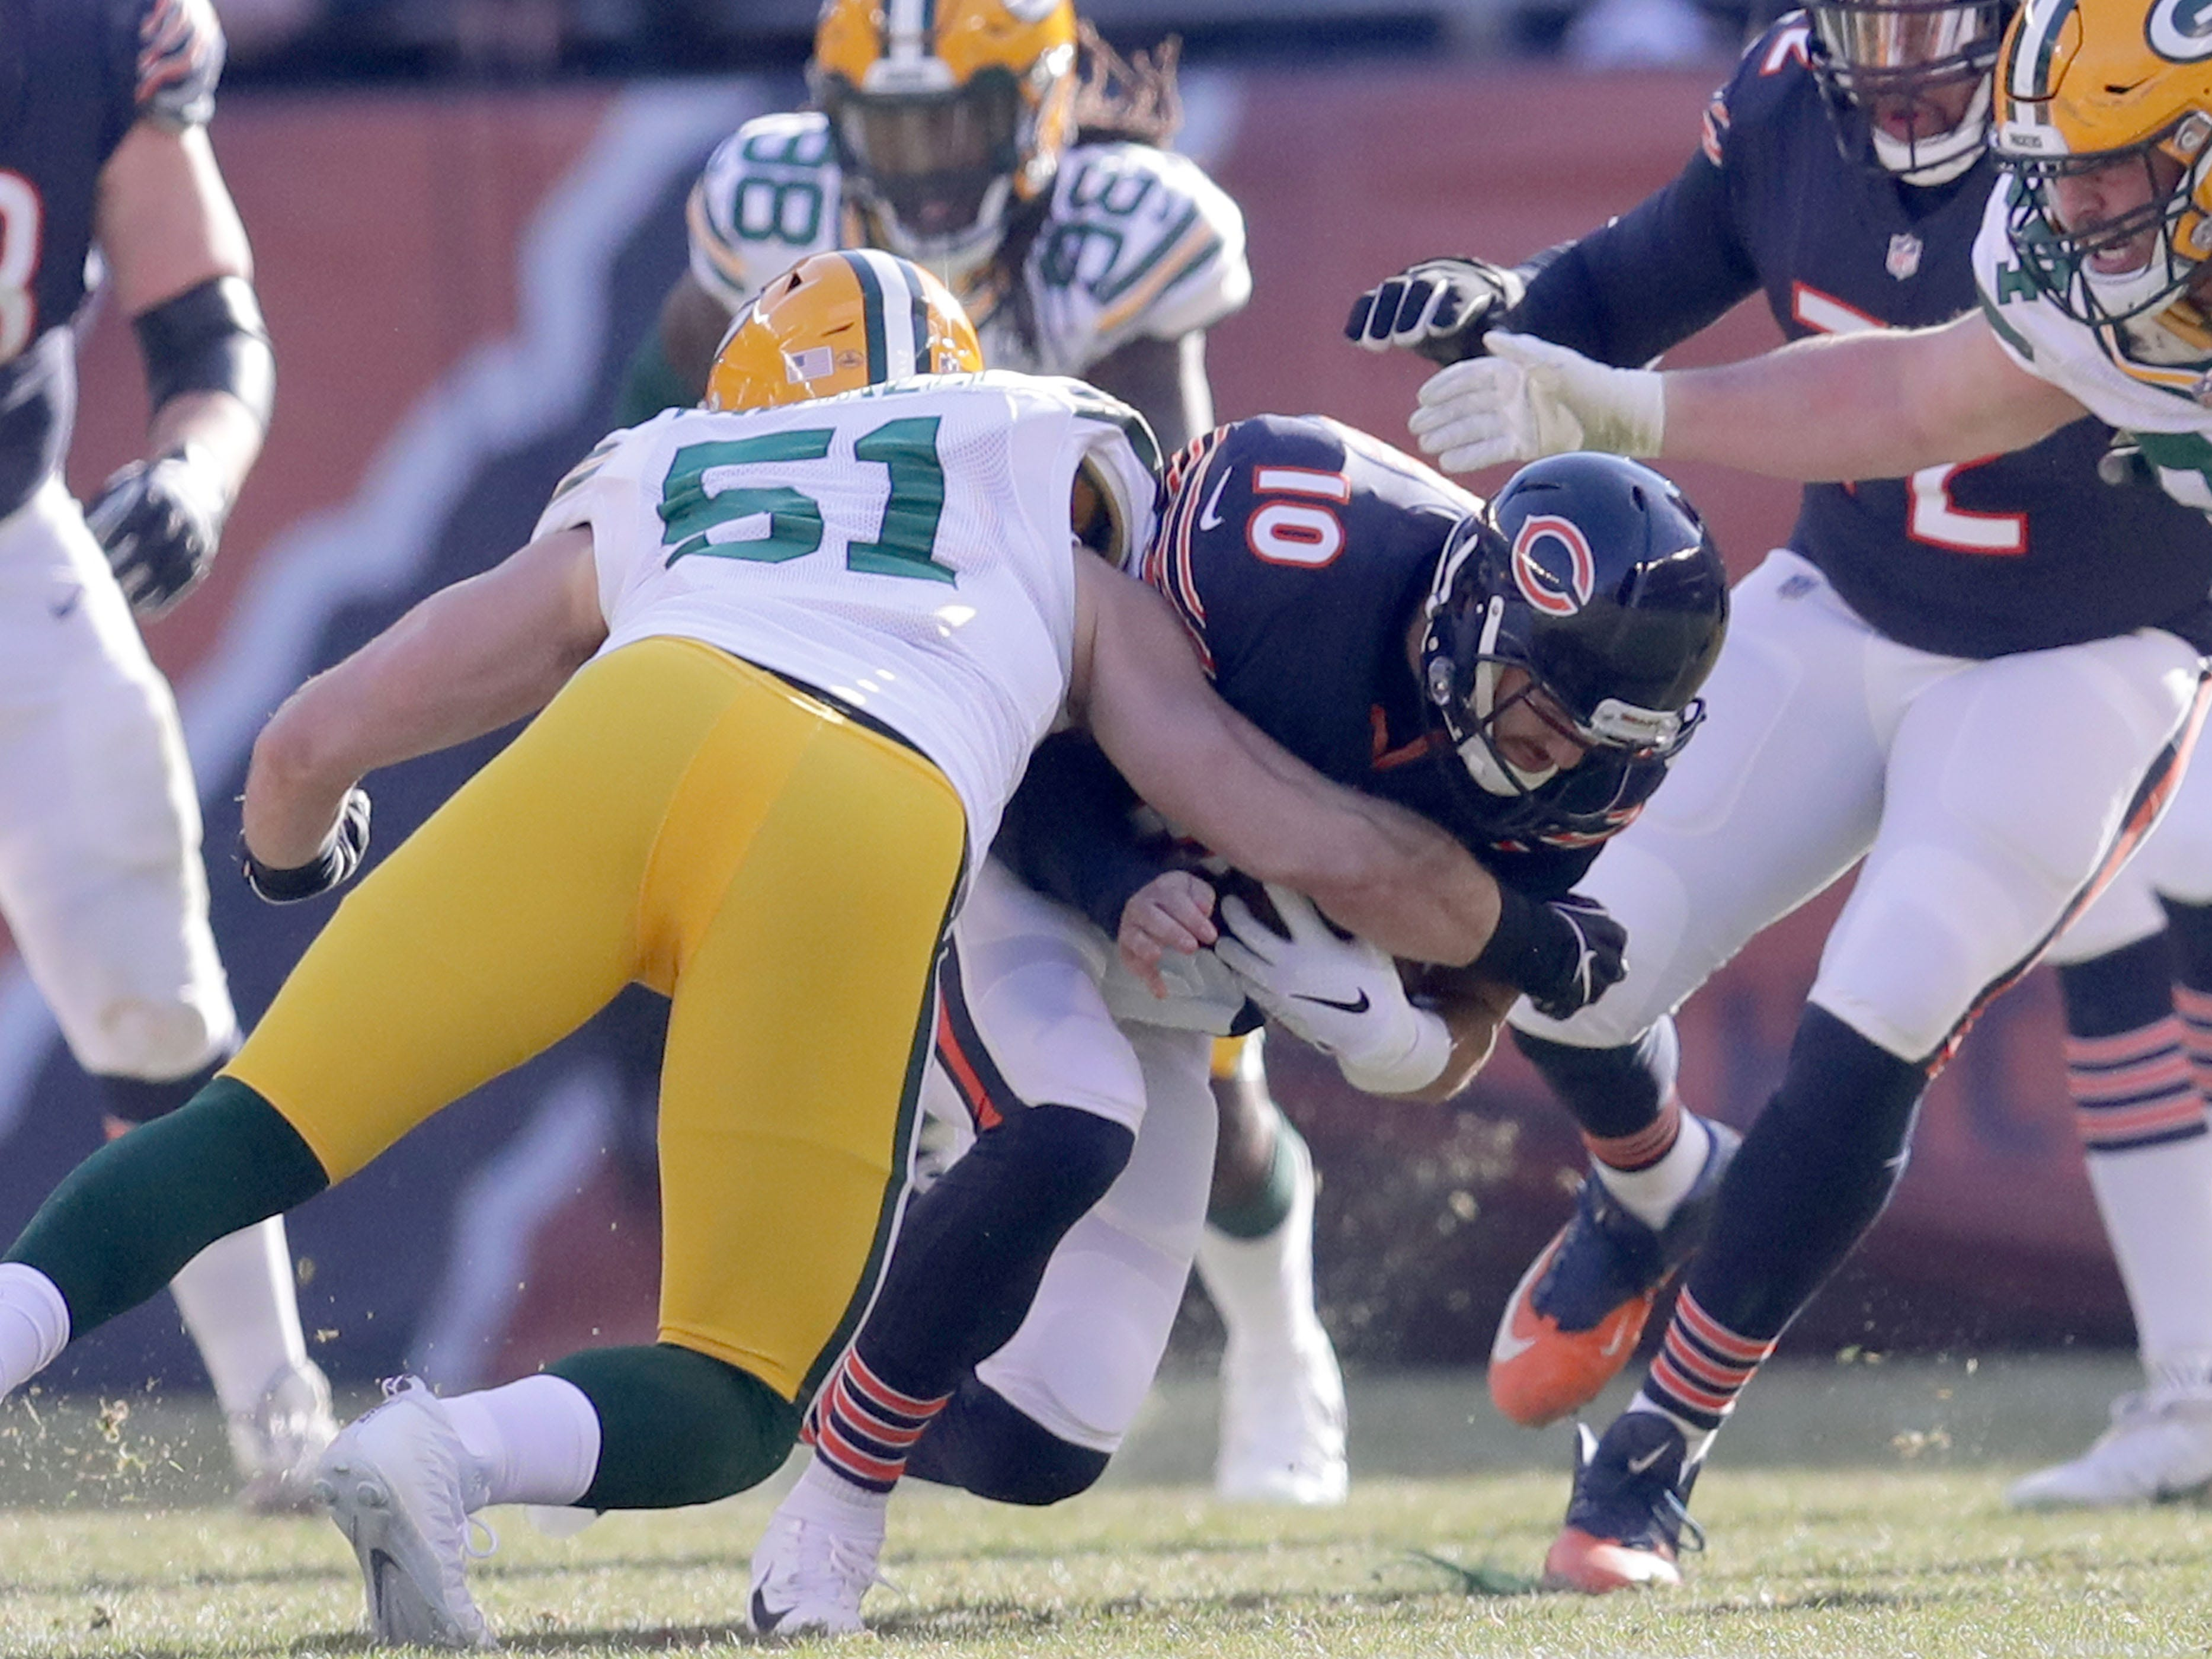 Chicago Bears' Mitchell Trubisky is sacked by Green Bay Packers' Kyler Fackrell during the 1st half of the Green Bay Packers game against the Chicago Bears at Soldier Field Sunday, Dec. 16, 2018, in Chicago. Photo by Mike De Sisti / The Milwaukee Journal Sentinel